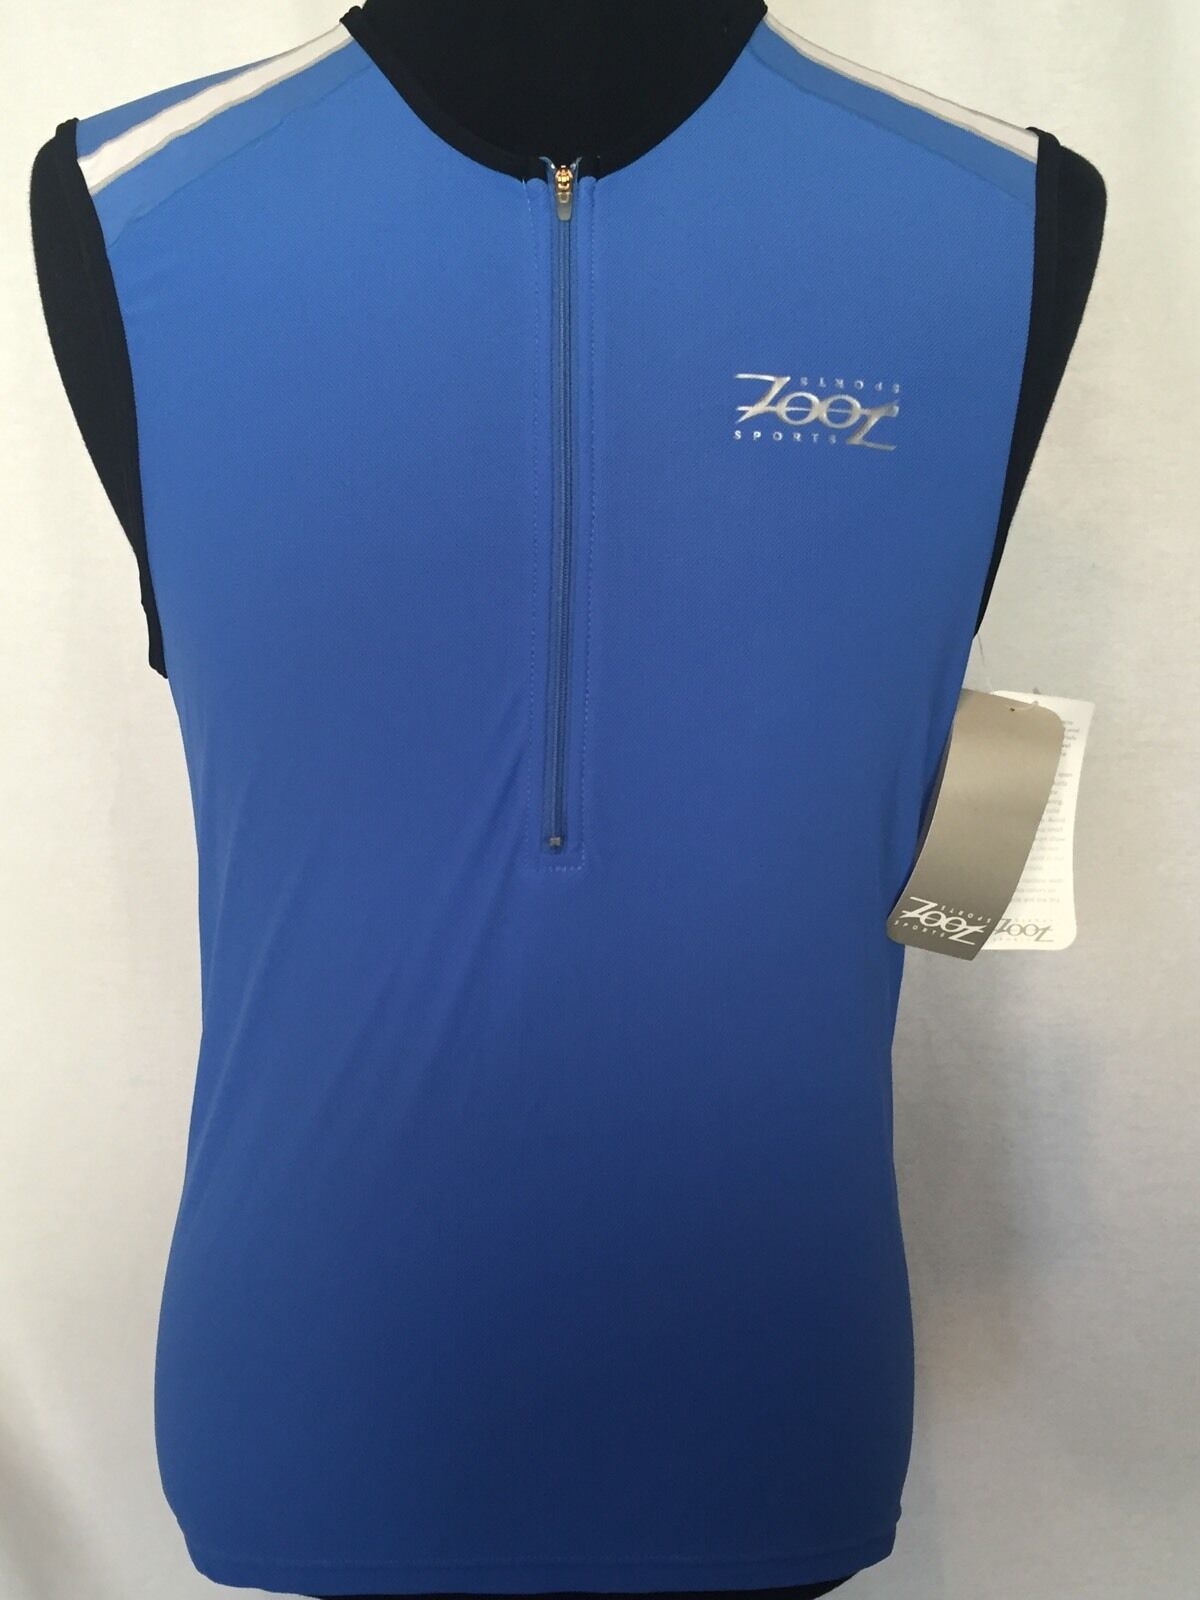 Zoot Cycling Vest Mens Large L bluee White New With Tags